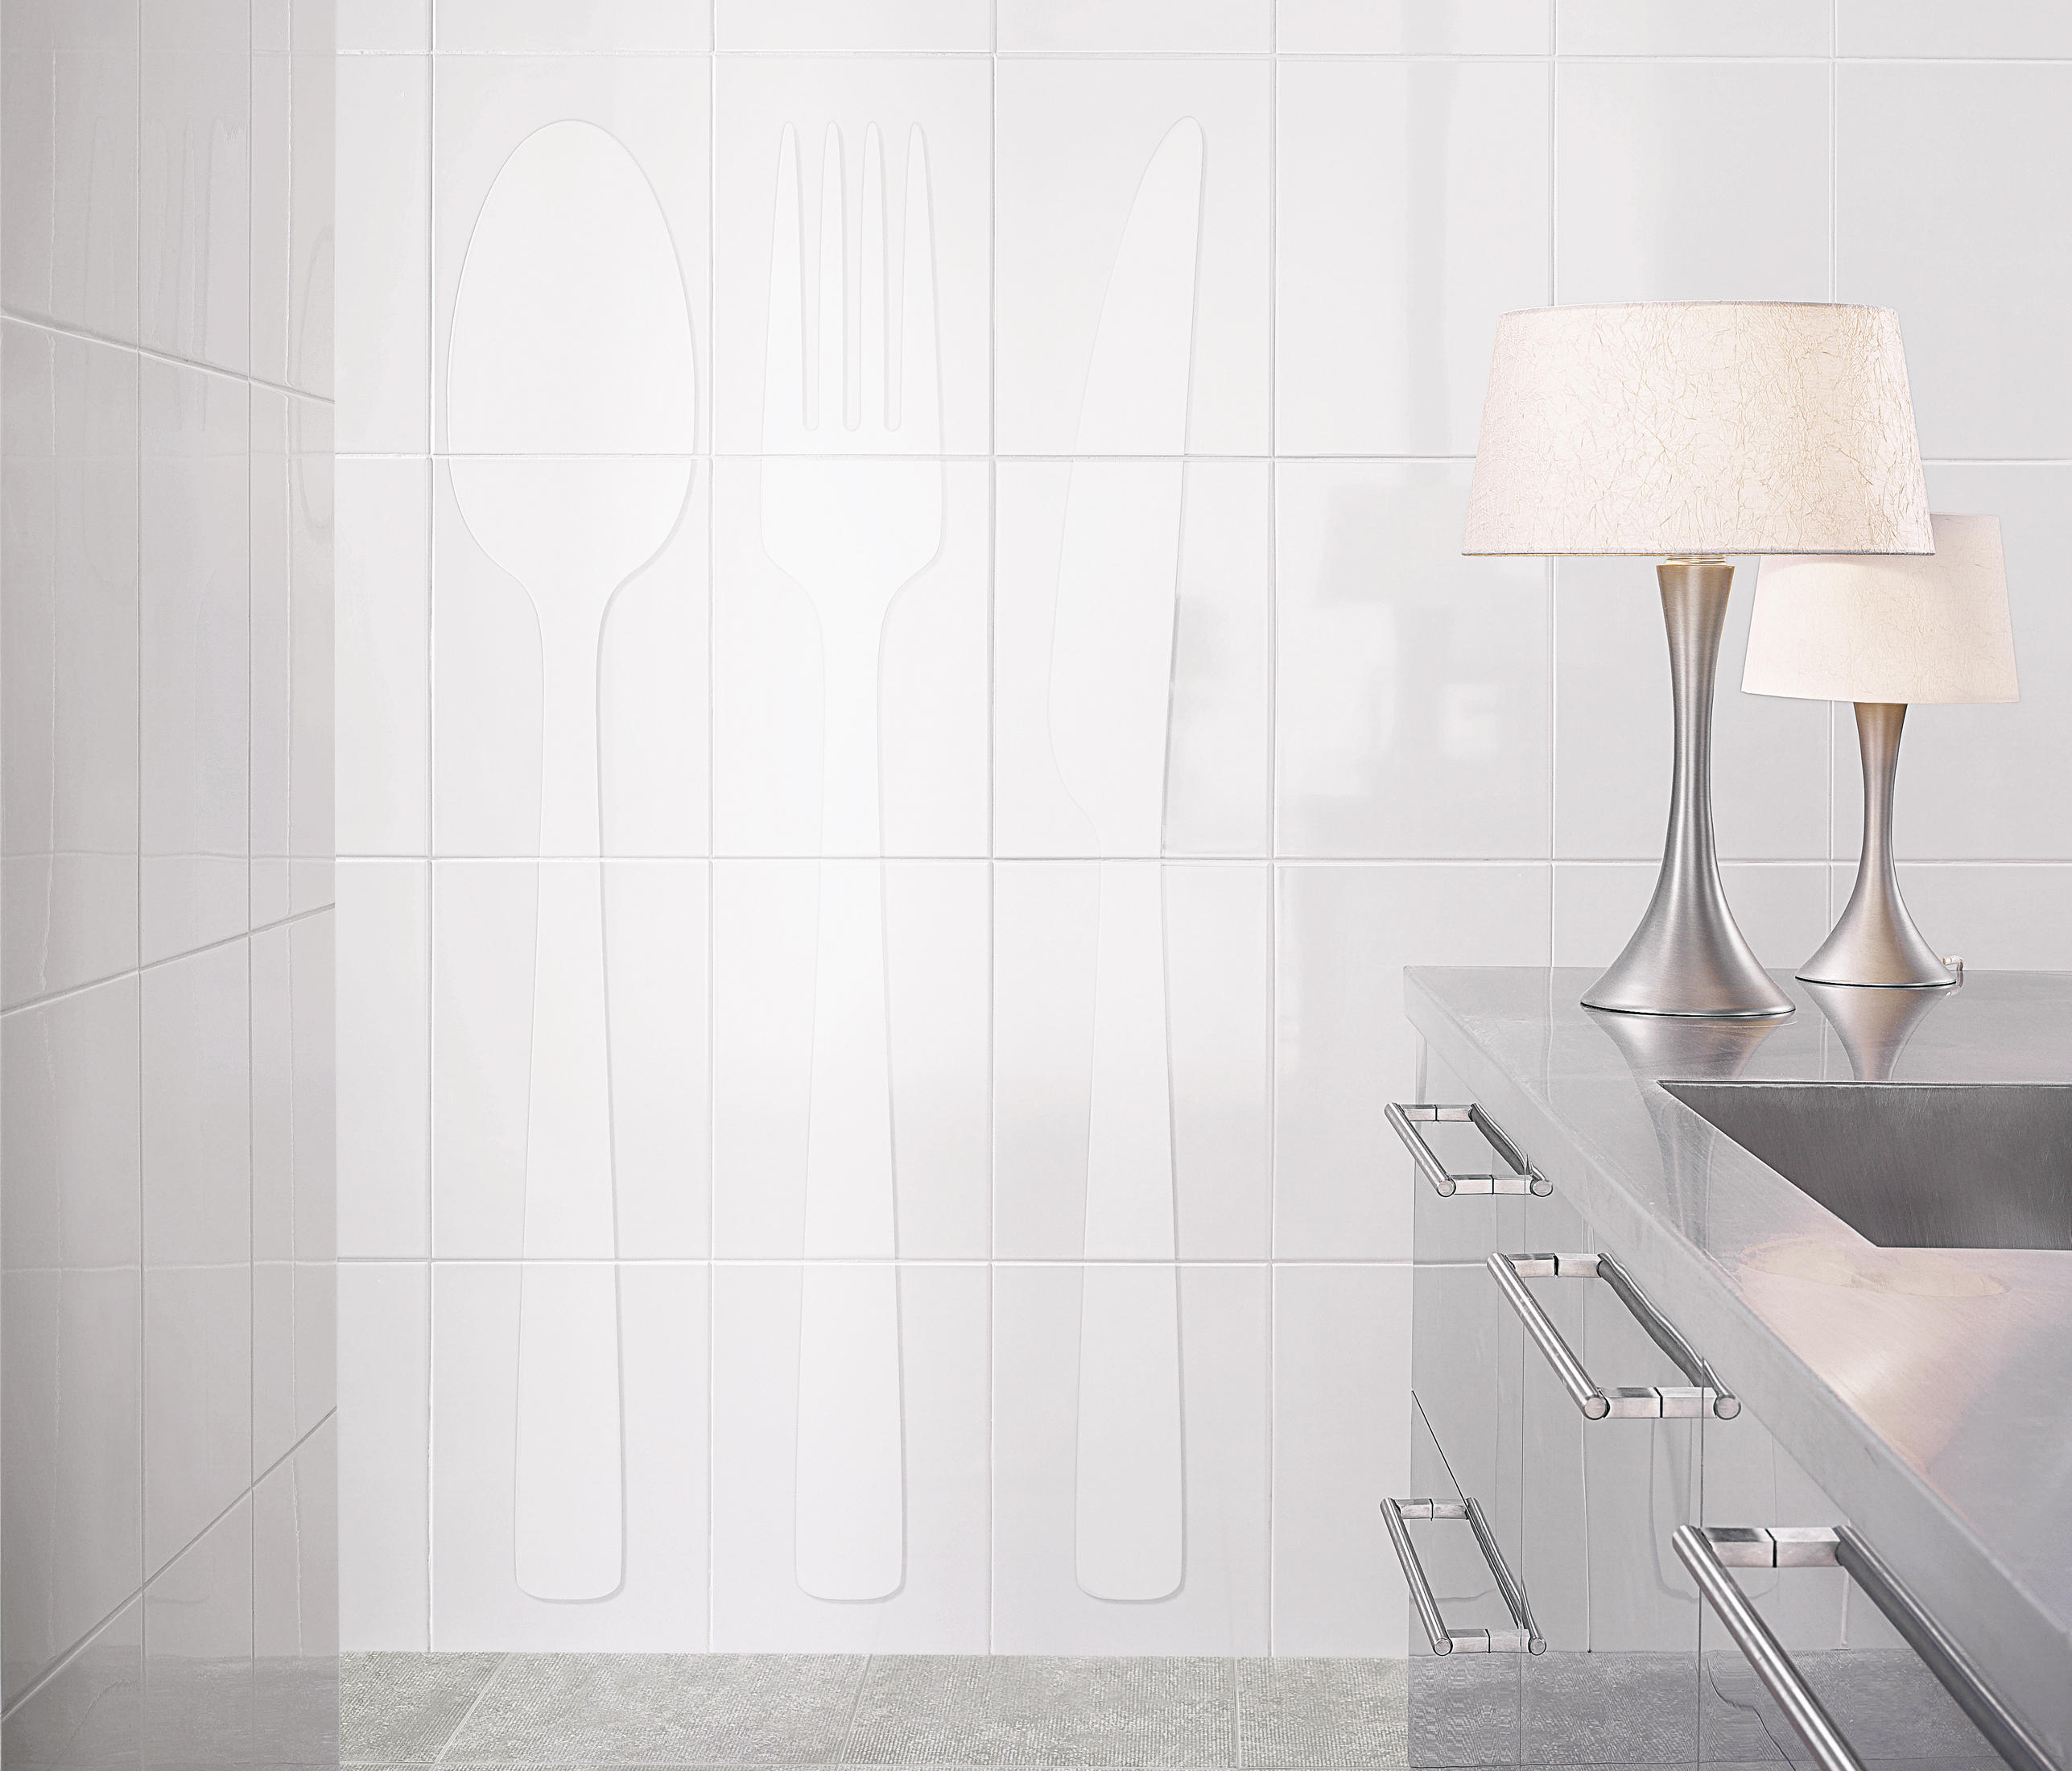 Blanco brillo ceramic tiles from vives cer mica architonic - Vives ceramica ...